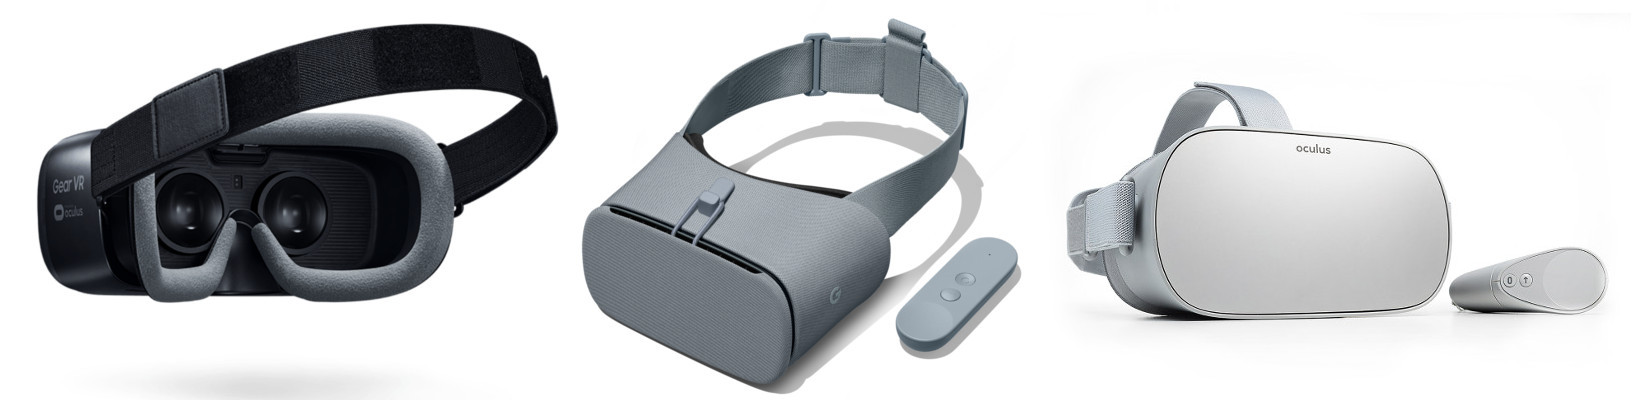 Samsung GearVR powered by Oculus, Google Daydream, Oculus Go,